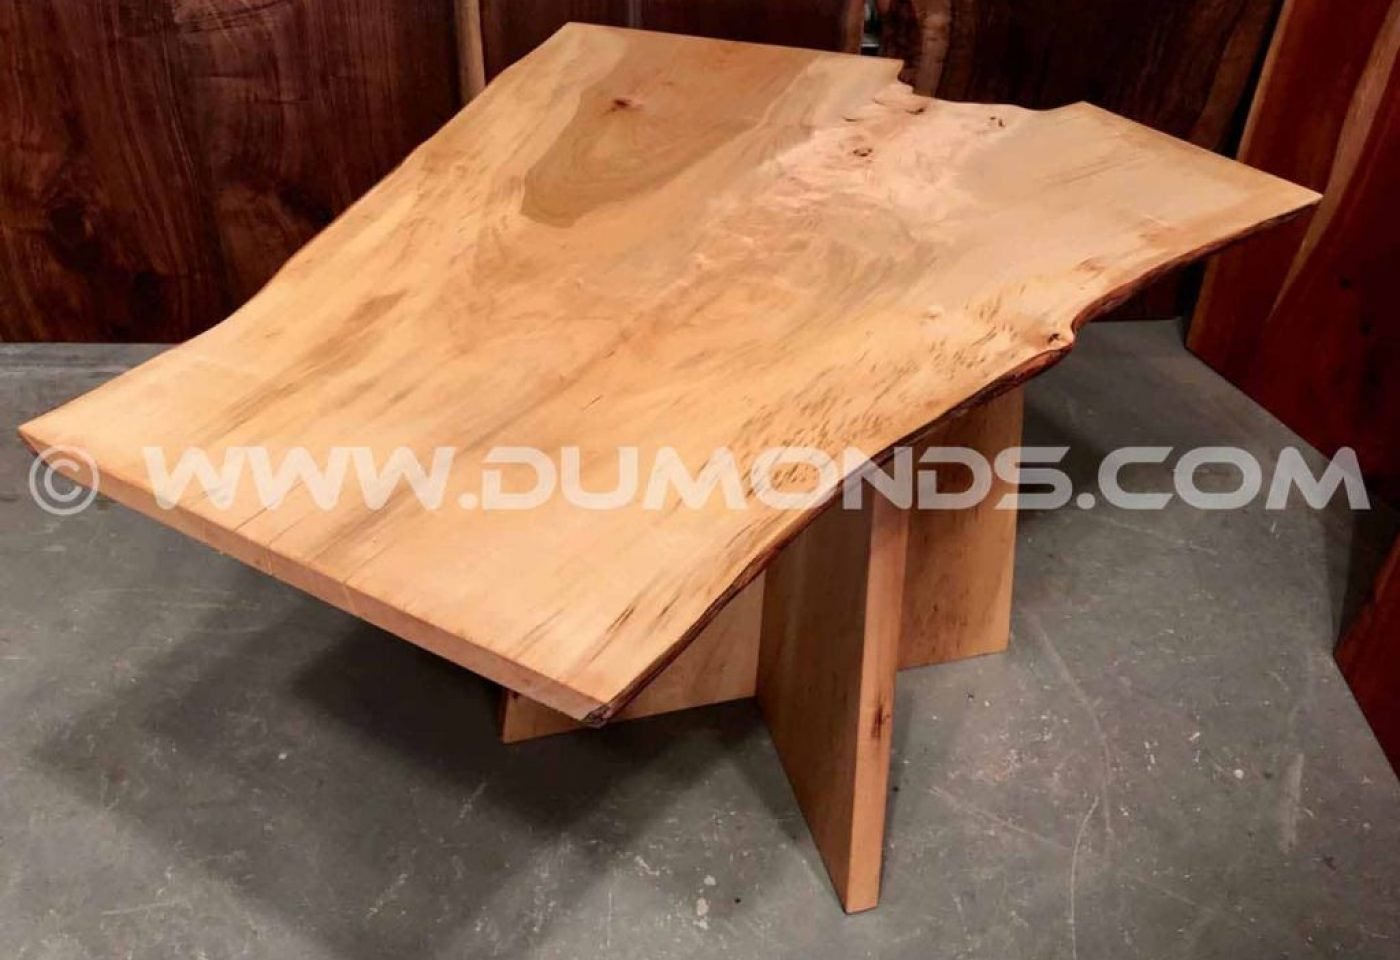 RECYCLED MAPLE CROTCH LIVE EDGE SLAB TABLE WITH MAPLE BASE